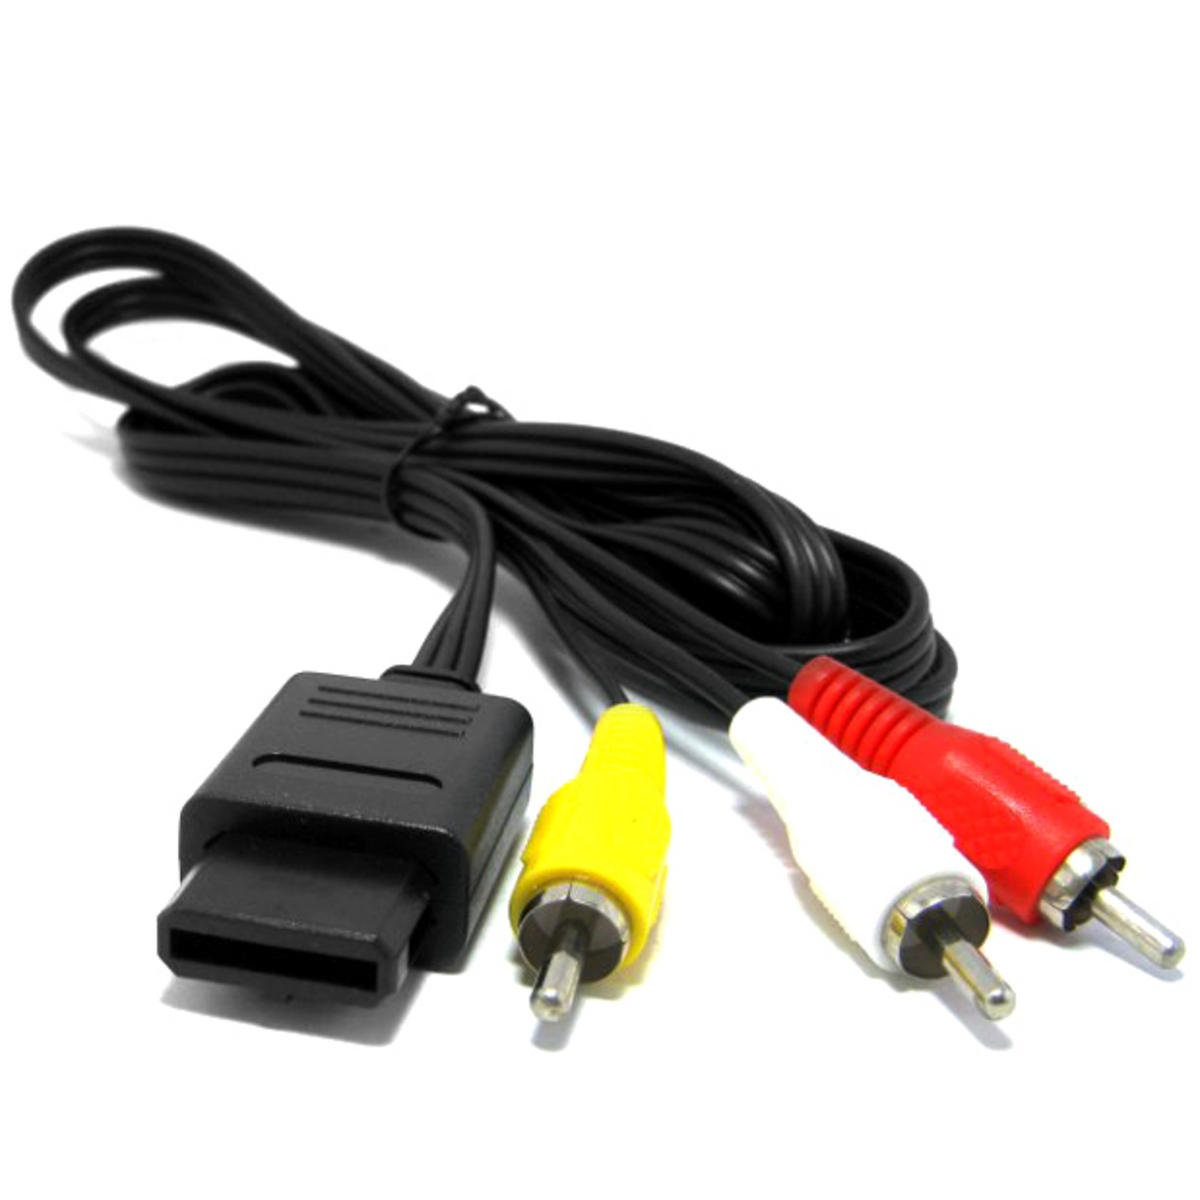 Composite AV Cable for Nintendo Super Nintendo / SNES, GameCube, and Nintendo 64 / N64 by Mars Devices